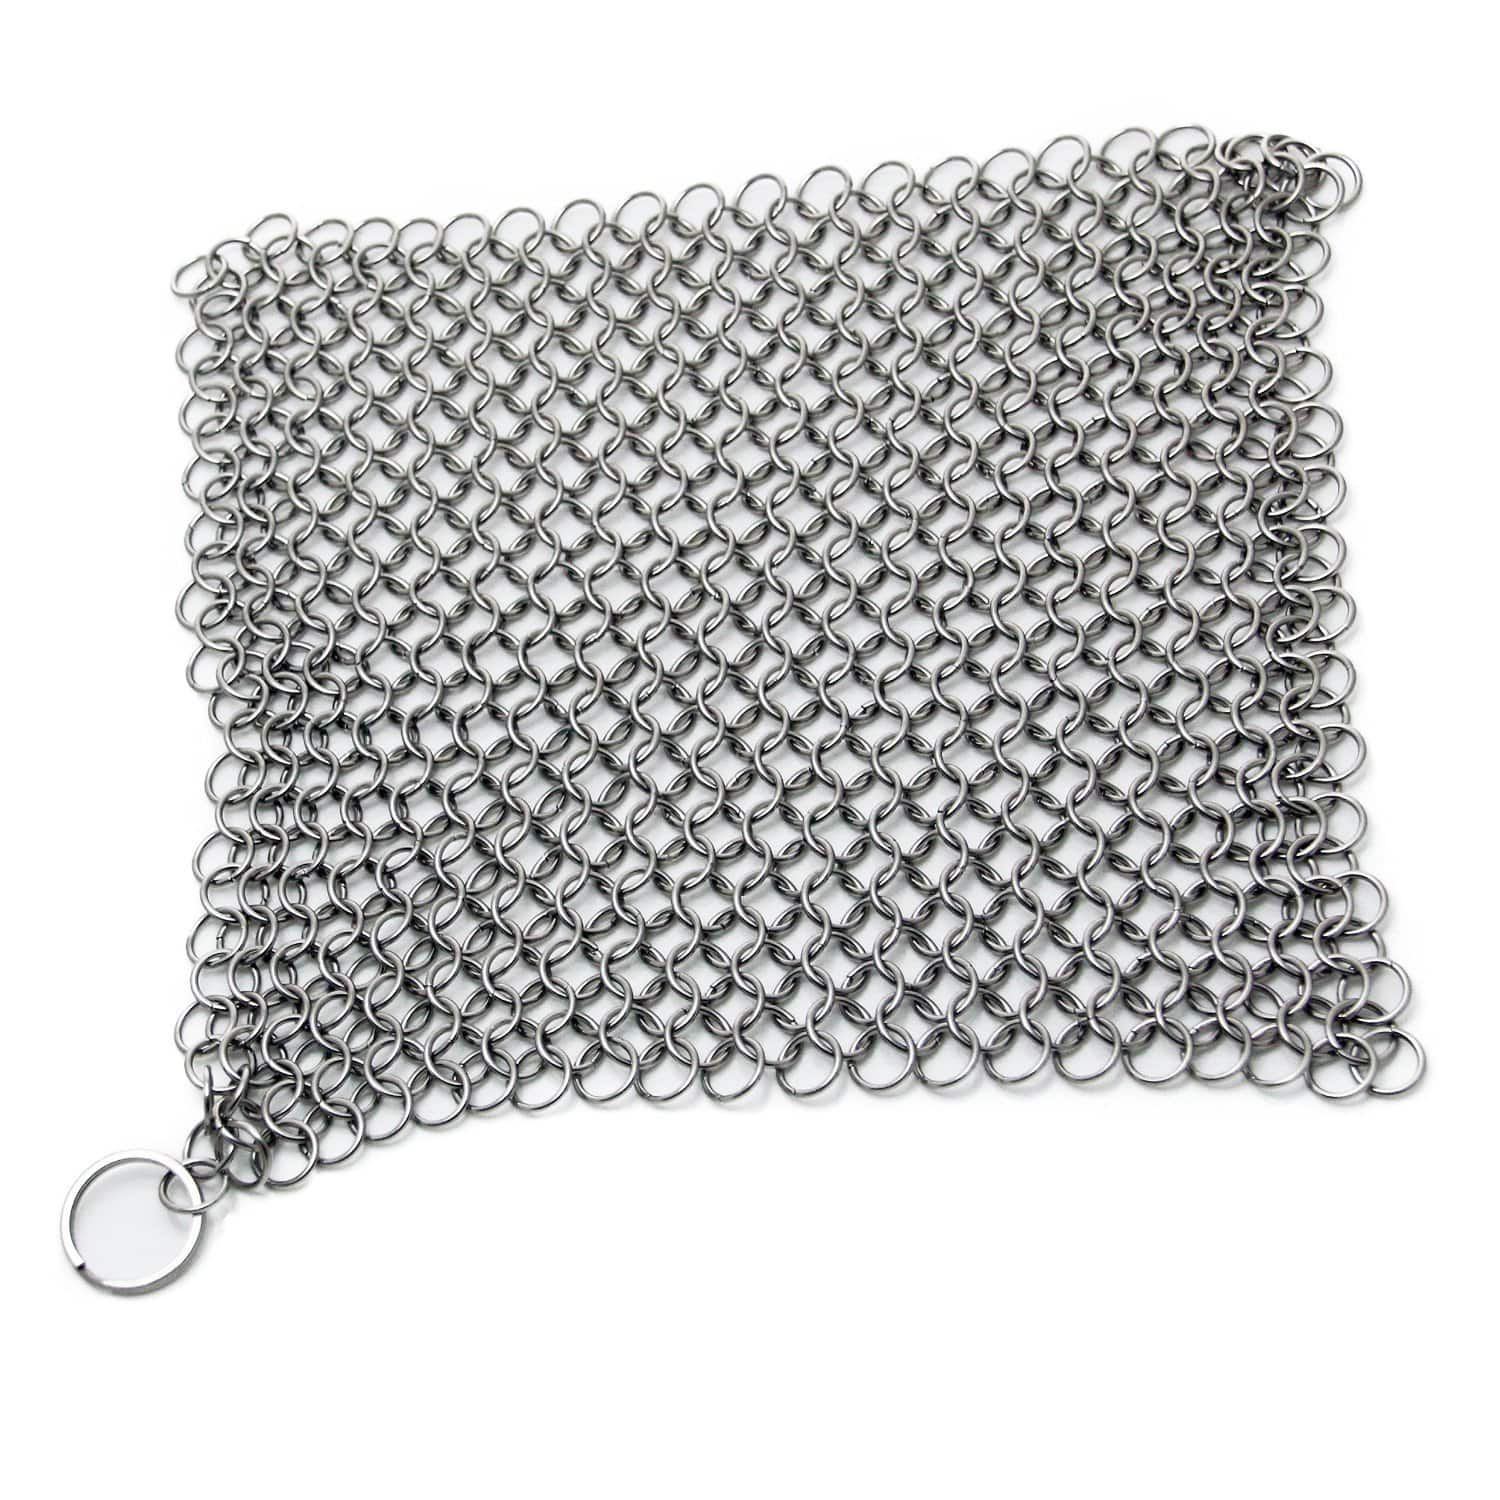 """8""""x6"""" Stainless Steel 316L Cast Iron Cleaner Chainmail Scrubber - $6.29 after promo code and free shipping"""